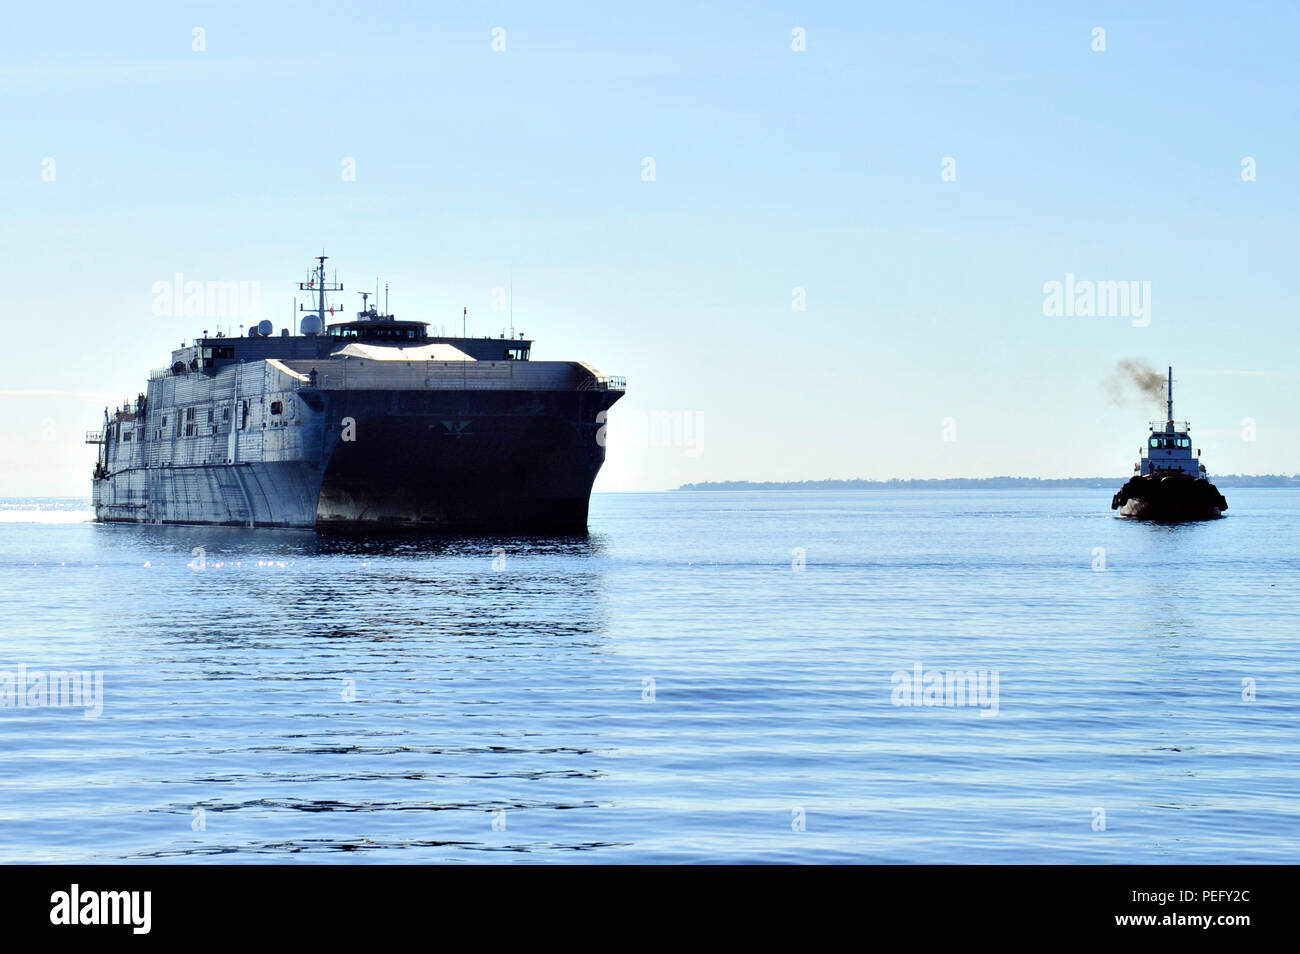 150817-N-YF678-012 DA NANG, Vietnam (Aug. 17, 2015) – The Military Sealift Command joint high speed vessel USNS Millinocket (JHSV 3) arrives in Vietnam, Aug. 17. Vietnam is the fifth stop for Millinocket and embarked Task Force Forager. Millinocket and embarked Task Force Forager are serving as the secondary platform for Pacific Partnership, led by an expeditionary command element from the Navy's 30th Naval Construction Regiment (30 NCR) from Port Hueneme, Calif. Now in its 10th iteration, Pacific Partnership is the largest annual multilateral humanitarian assistance and disaster relief prepar - Stock Image